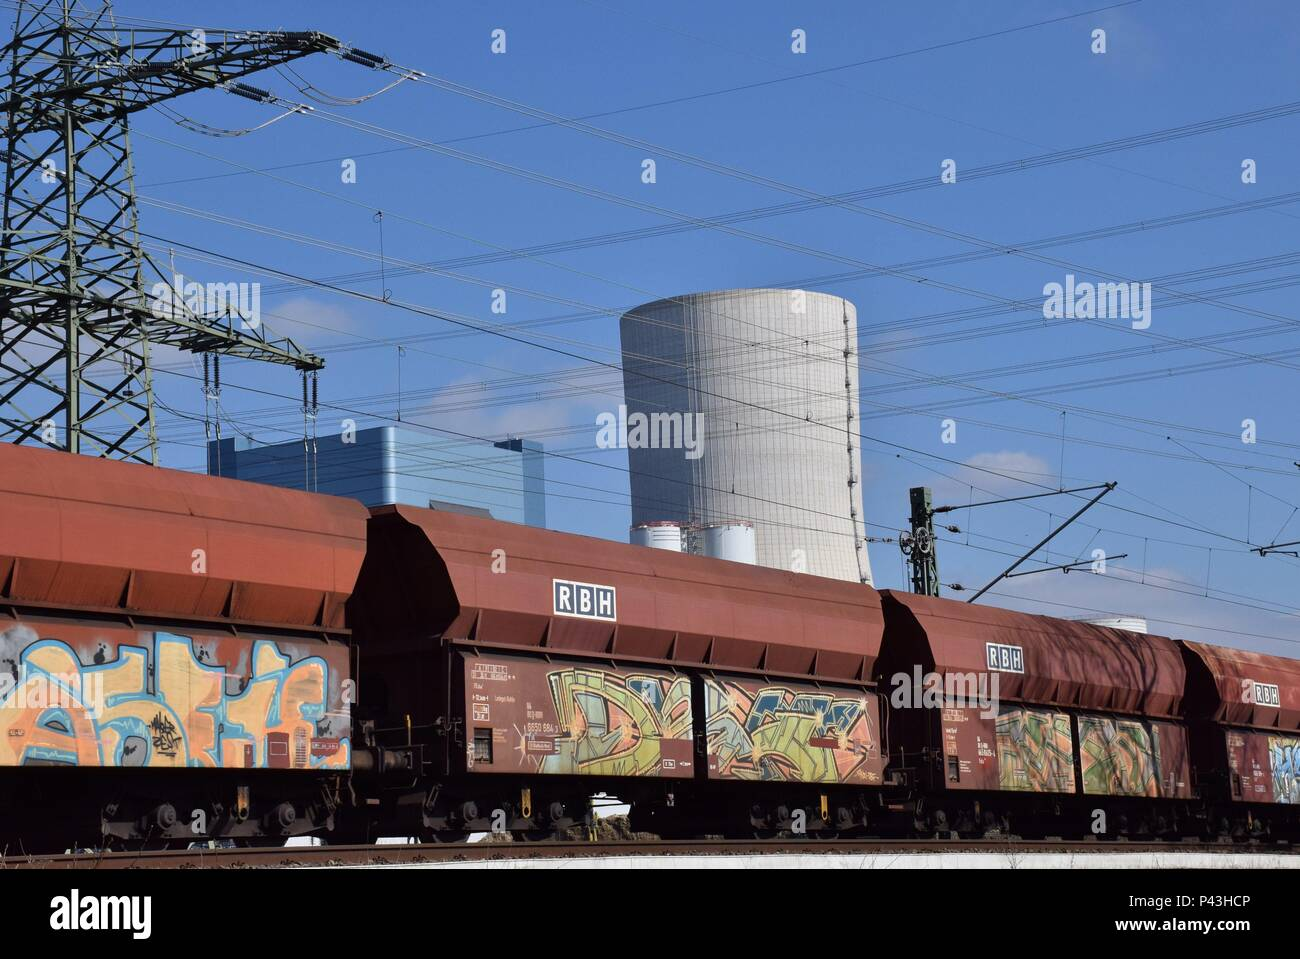 Graffiti on freight waggon in front of power plant on 23.03.2017 in Datteln - Germany. | usage worldwide - Stock Image